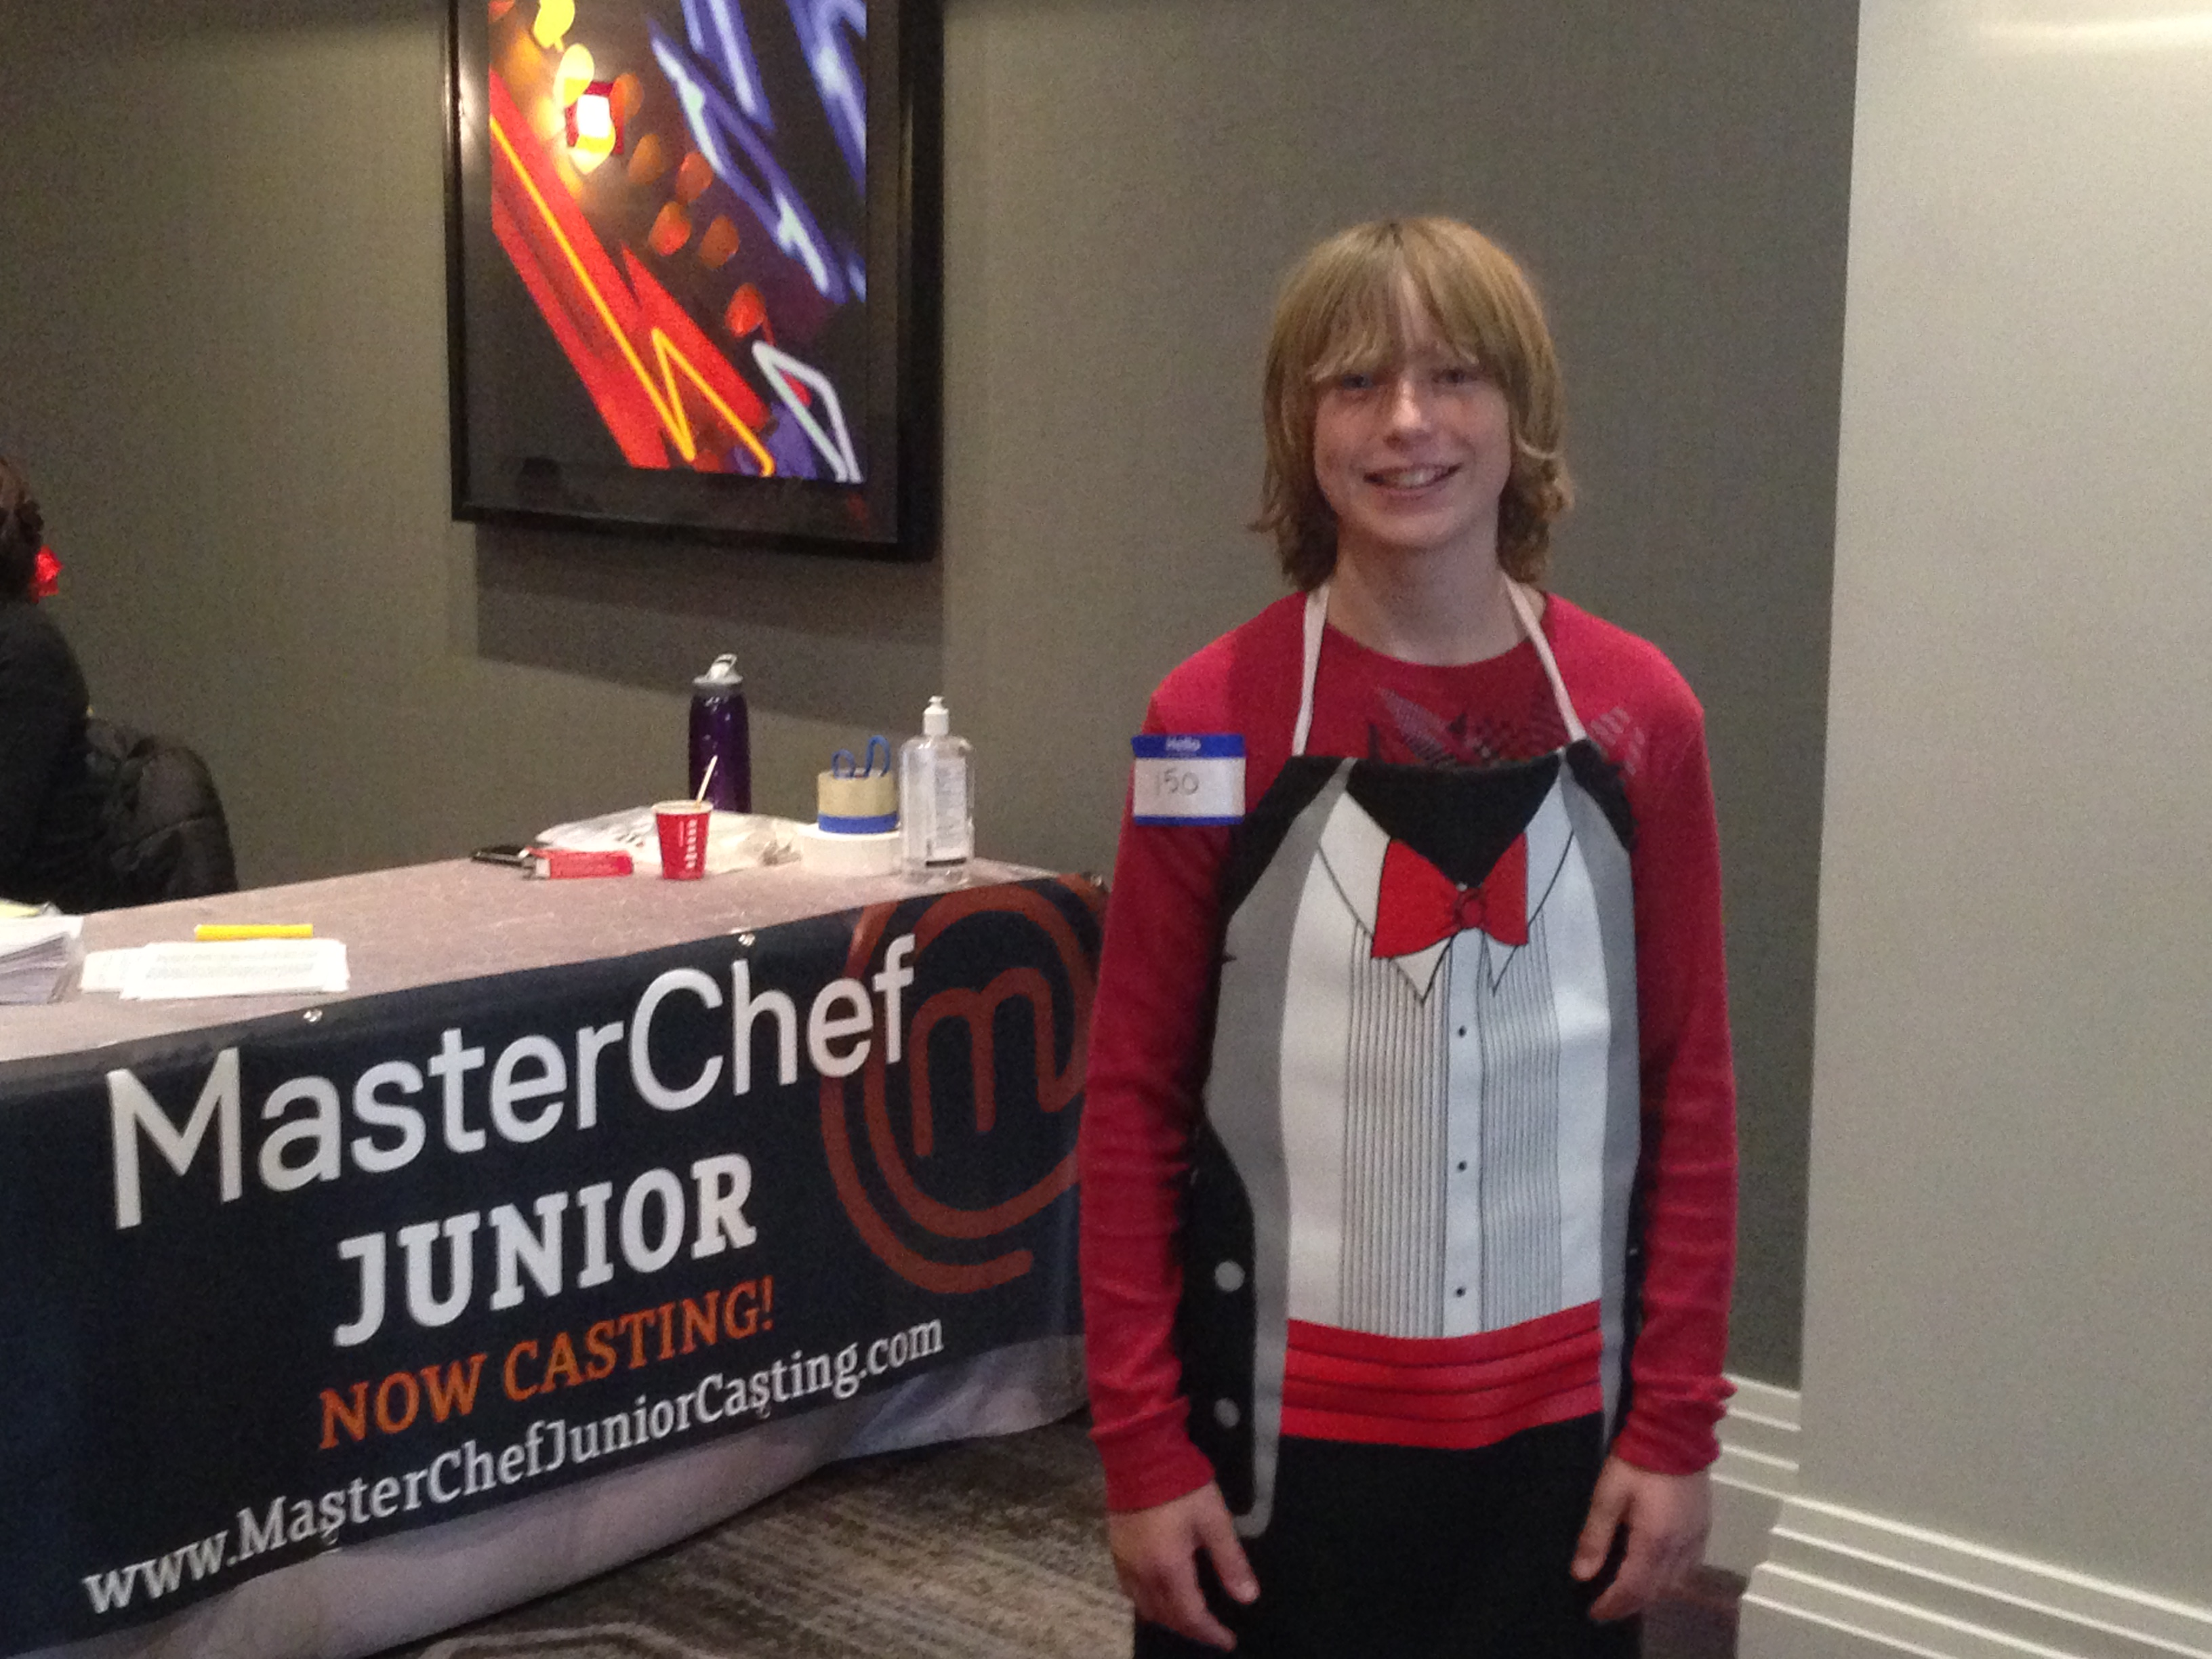 Zach at Master Chef Junior